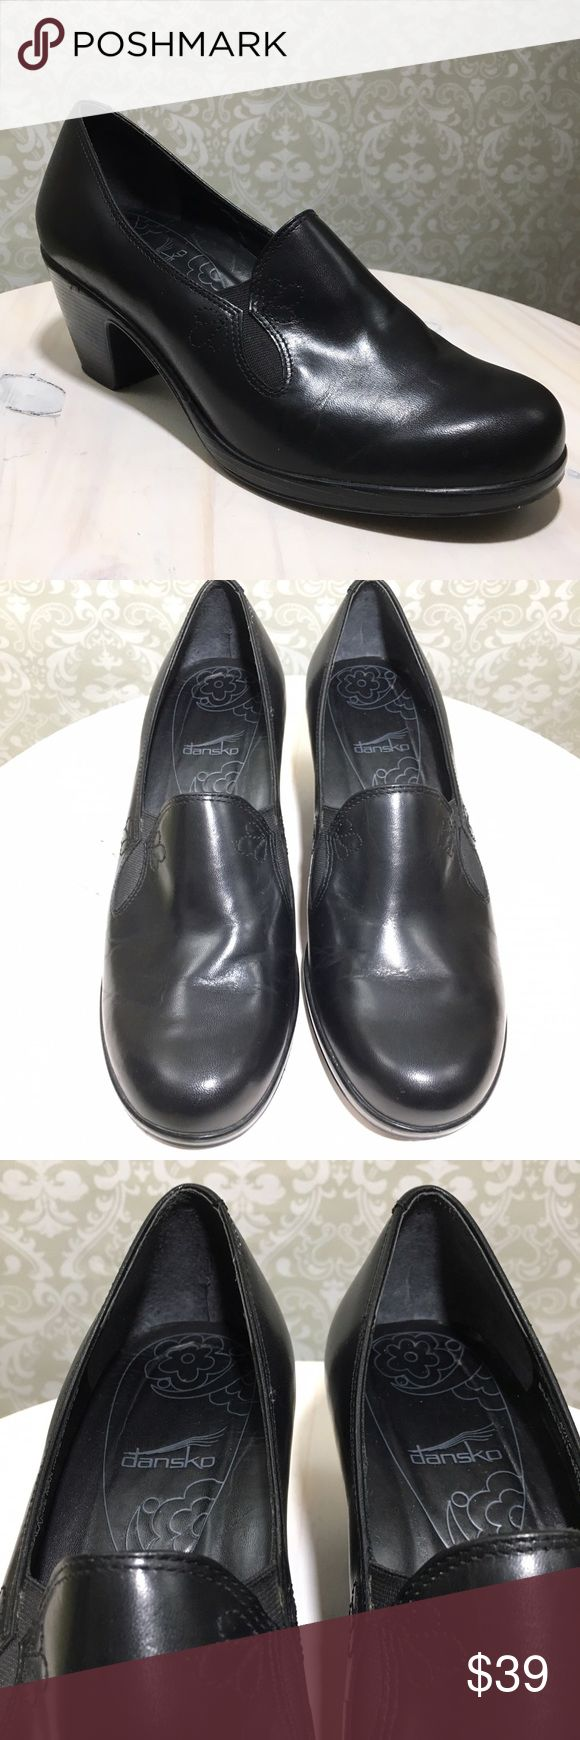 """DANSKO Beth Black Leather Pumps Clogs Embroidered DANSKO - Beth Women Size 10/40  Black  Leather  Pumps Clogs  Embroidered FloralAccents 2.75"""" Heel  Overall excellent condition. Minor scratches and scuffs throughout. Construction and material in excellent condition. Minor creasing at toe. Dansko Shoes Heels"""